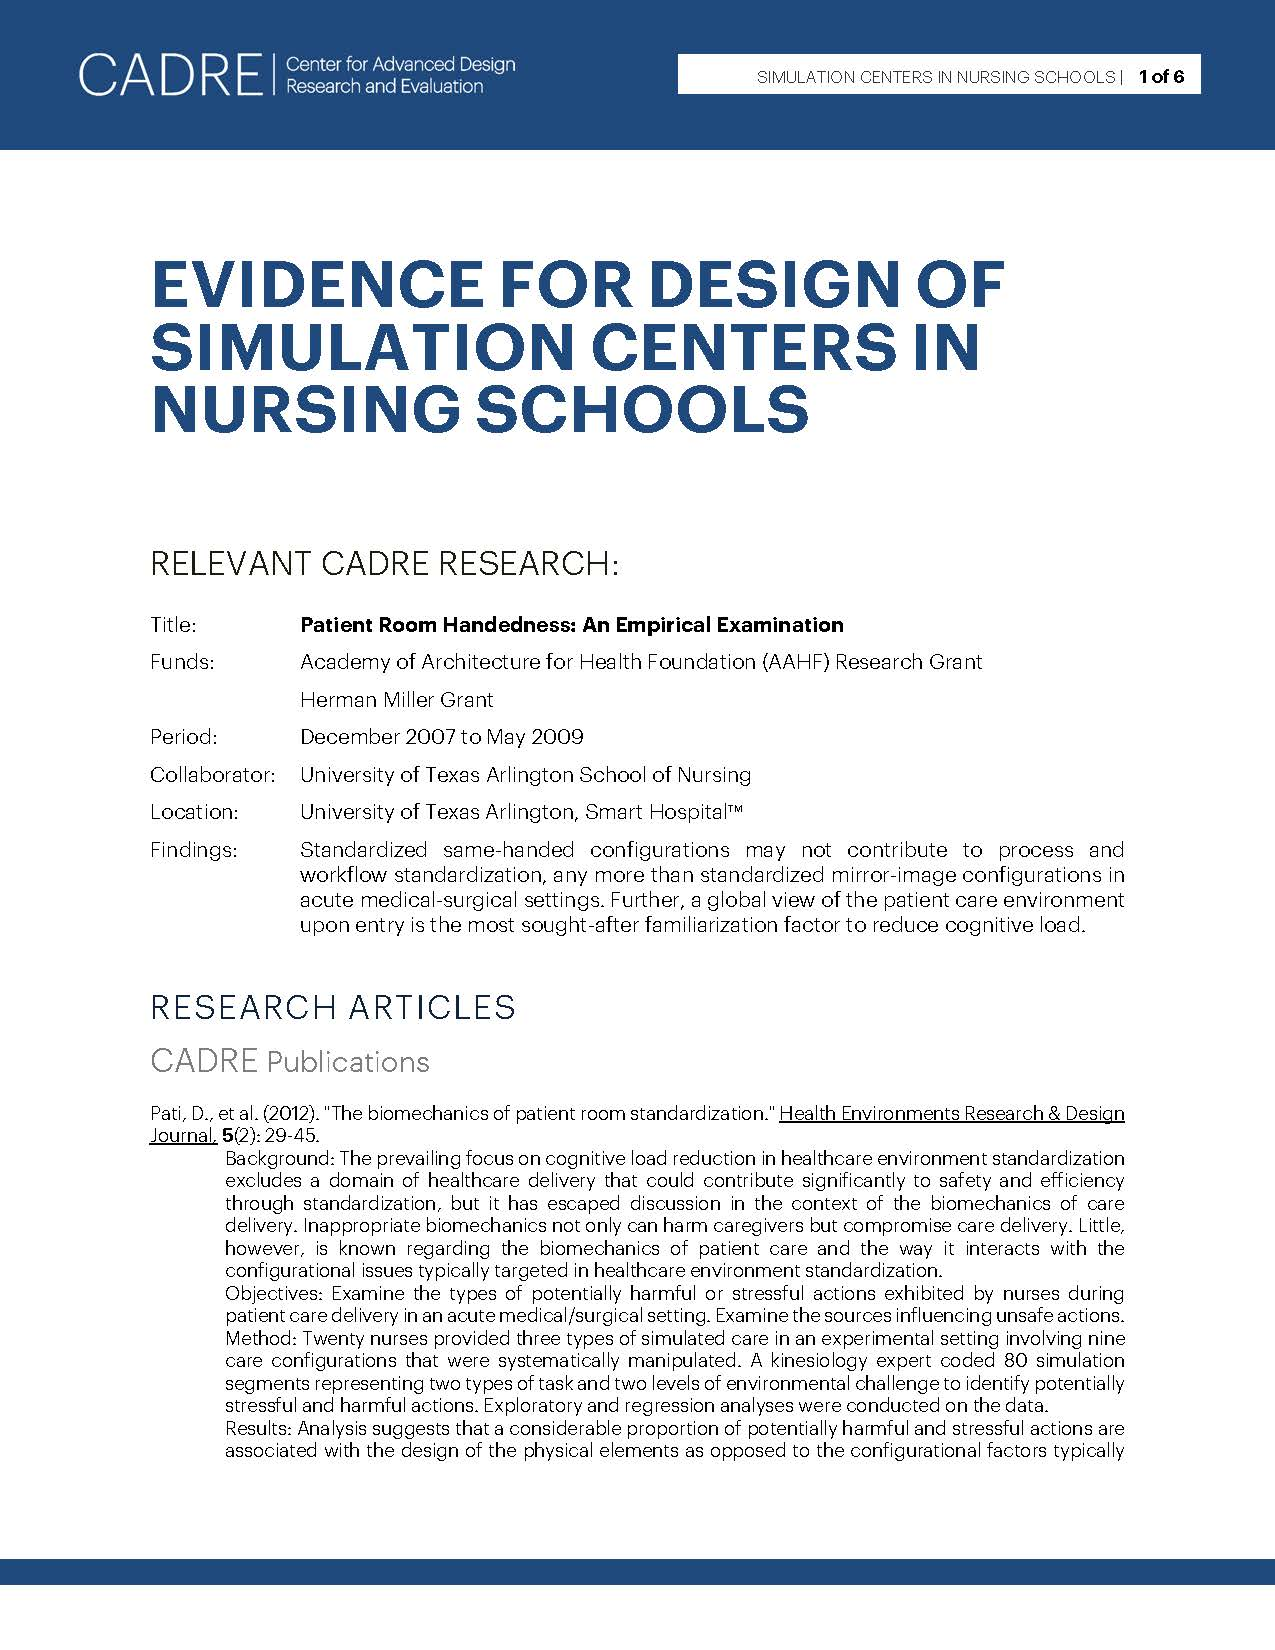 EVIDENCE FOR NURSING SCHOOL SIMULATION CENTERS_Resource List.jpg